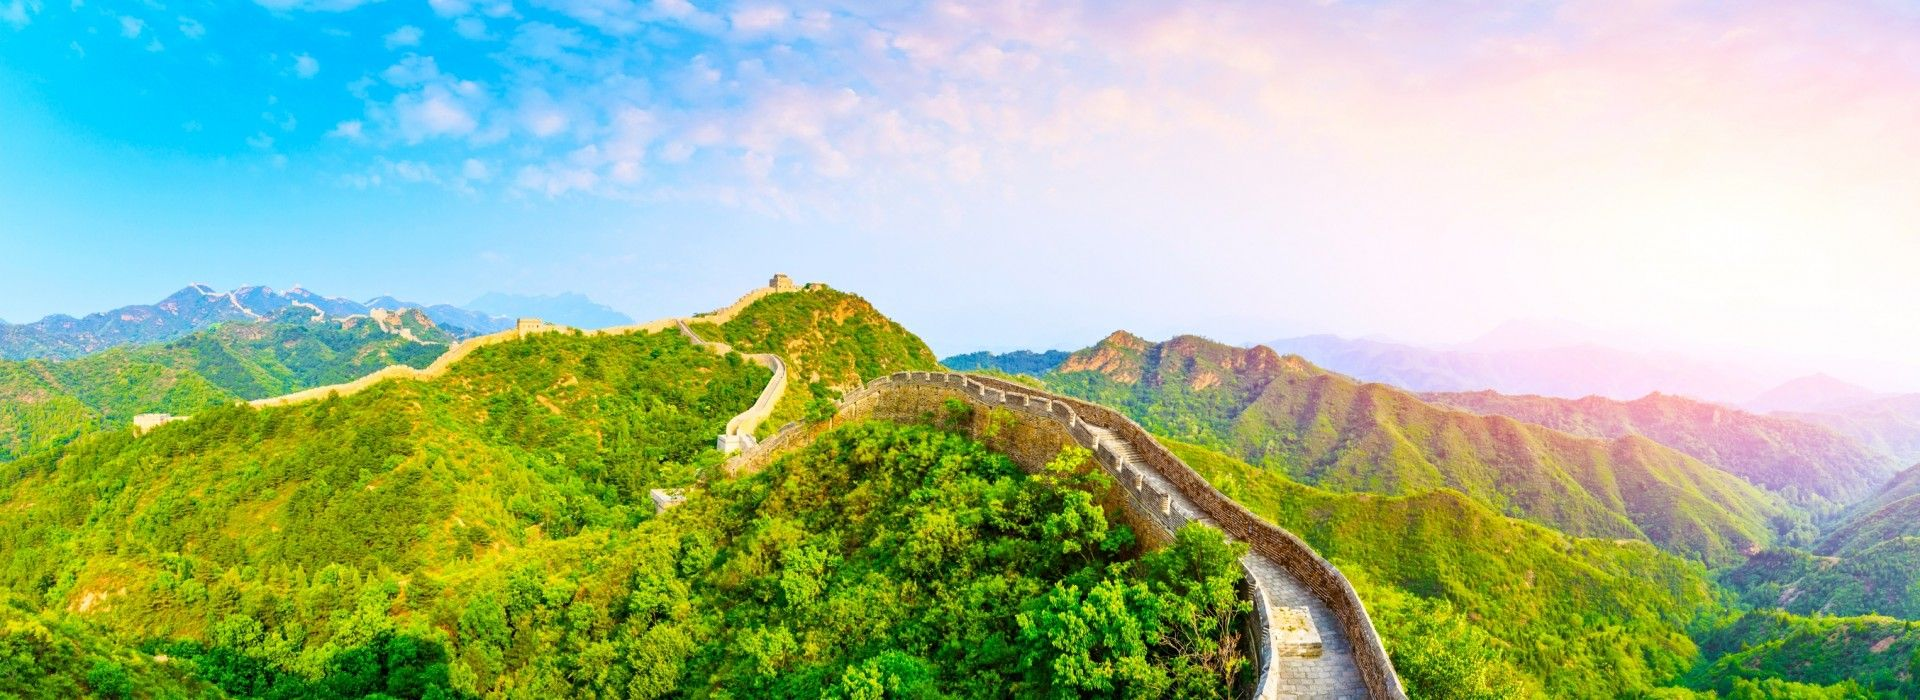 Sightseeing, attractions, culture and history Tours in Beijing